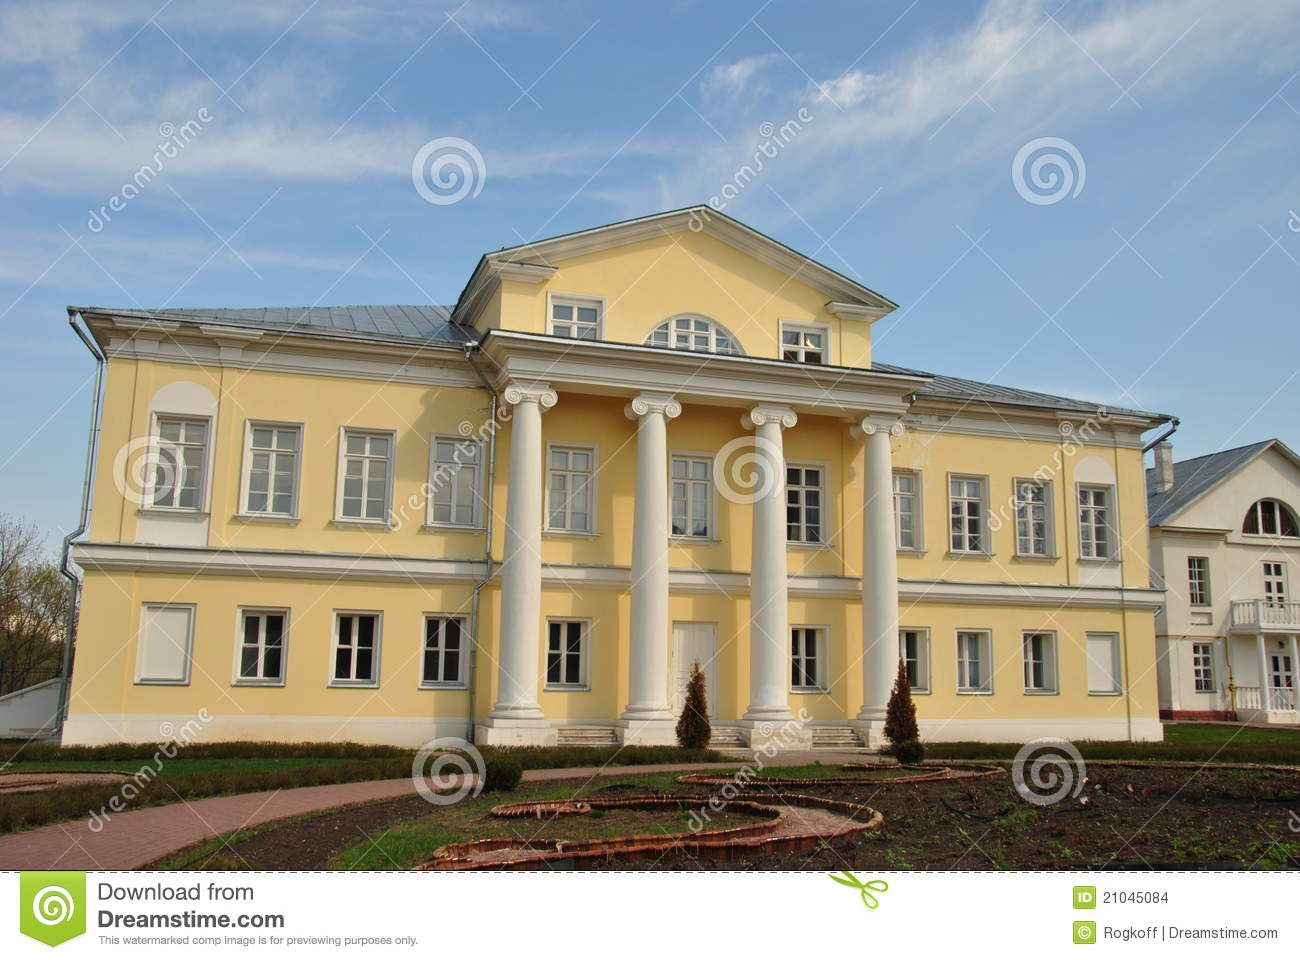 Manor Sviblovo in Moscow: description, history and interesting facts 95